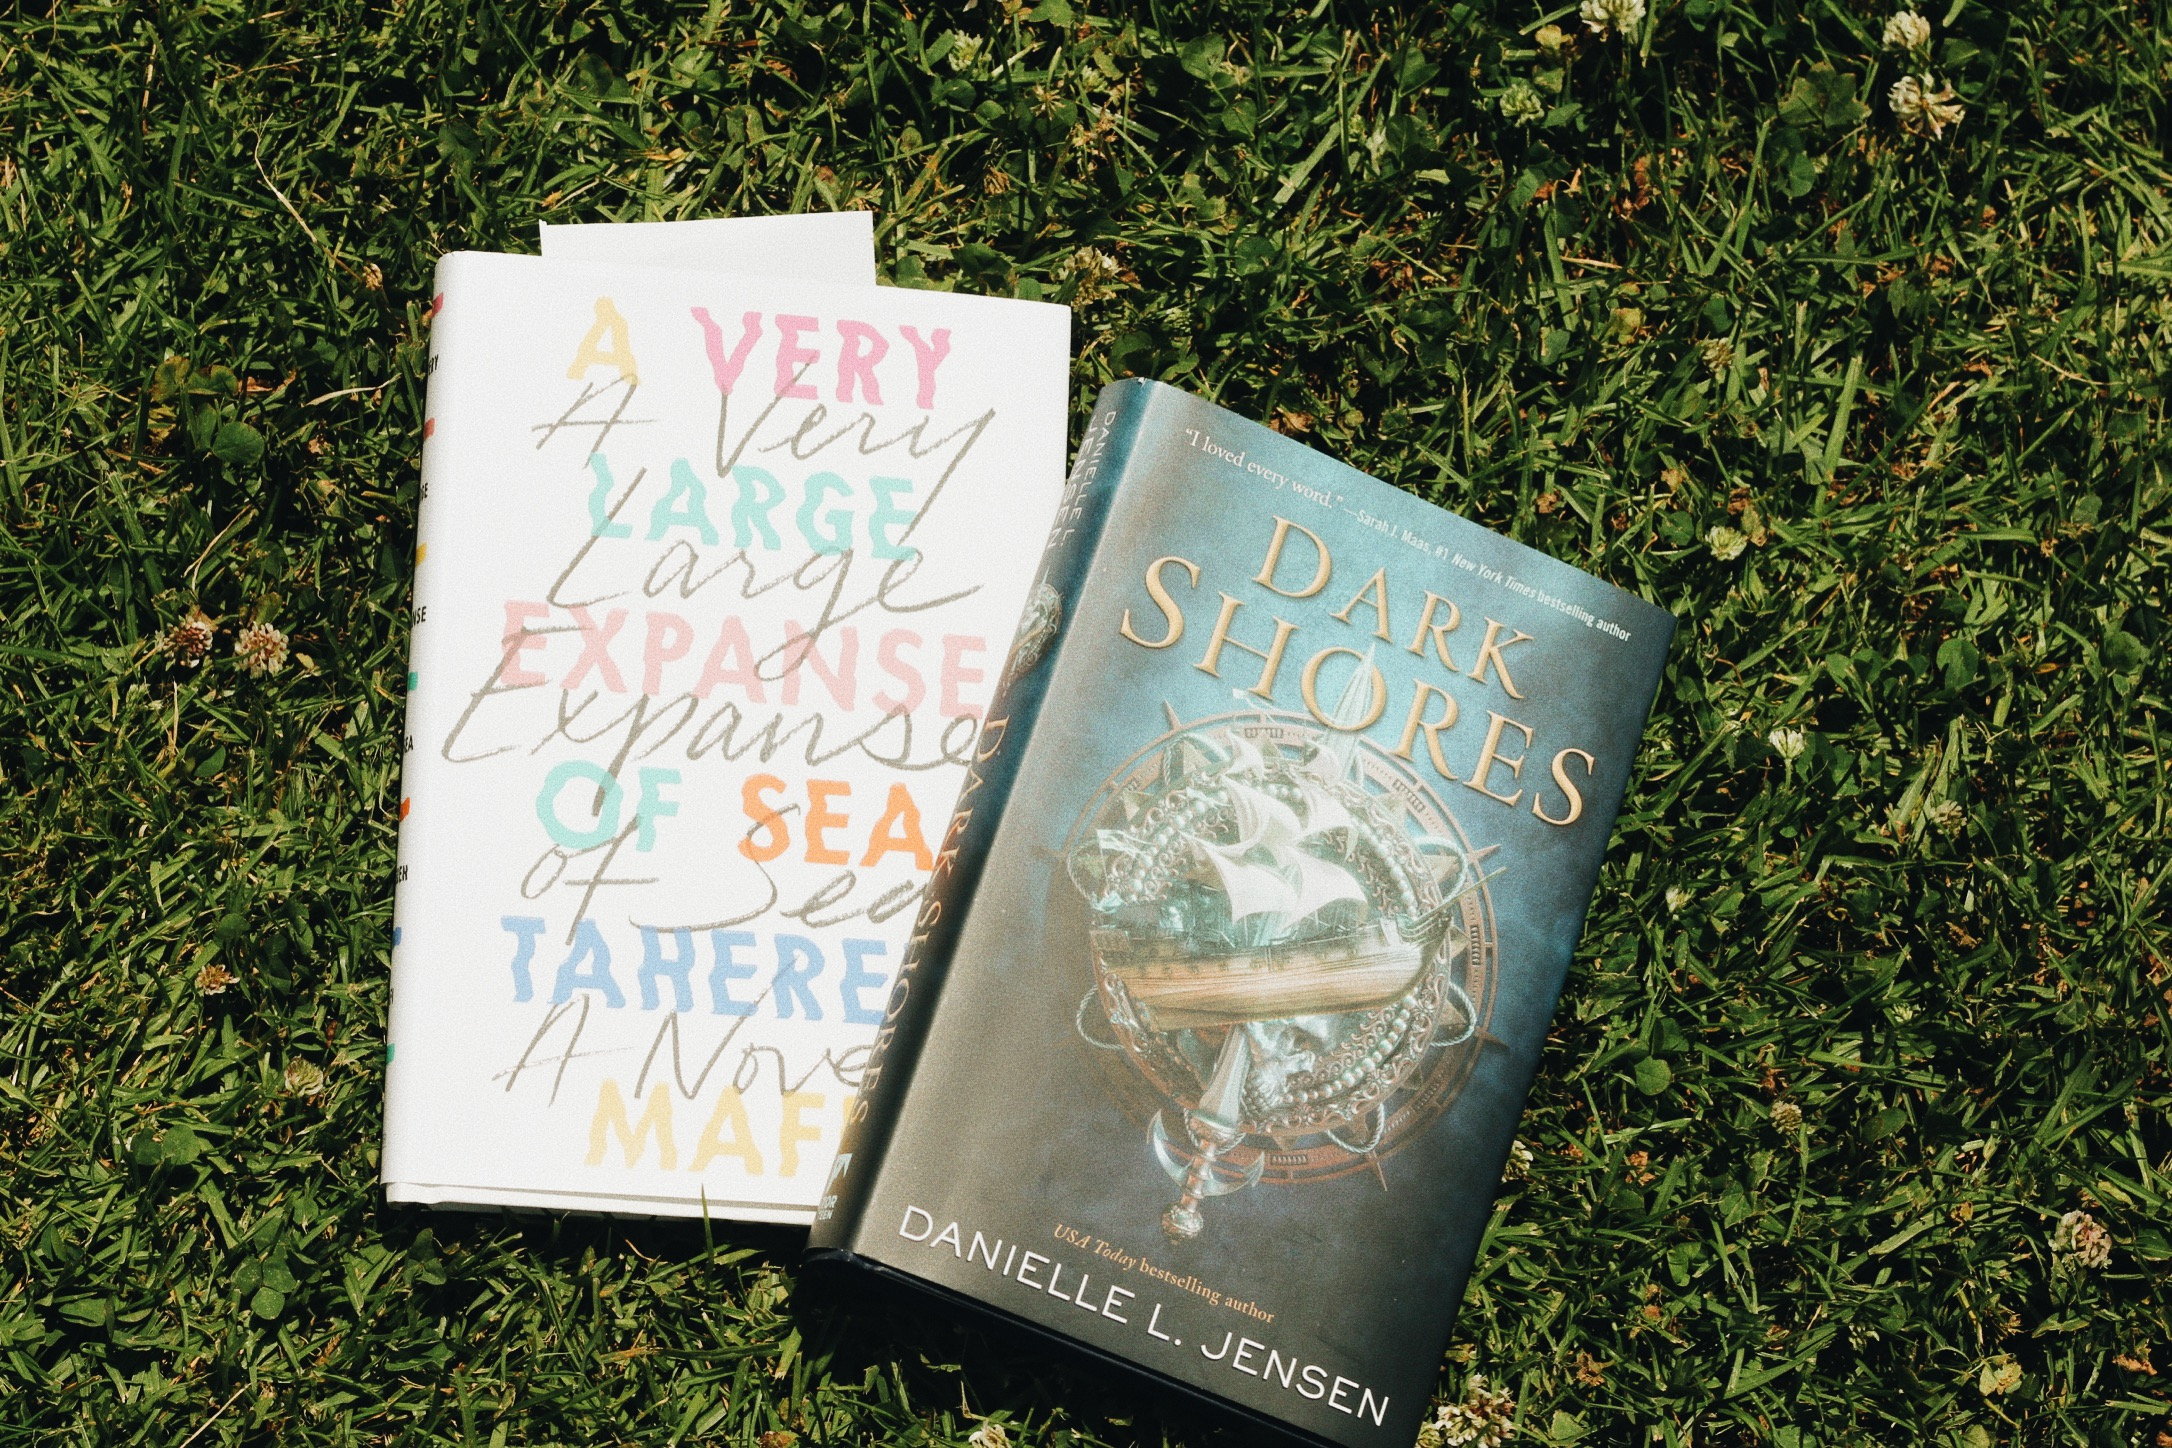 A Very Large Expanse of Sea  by Tahereh Mafi and  Dark Shores  by Danielle L. Jensen